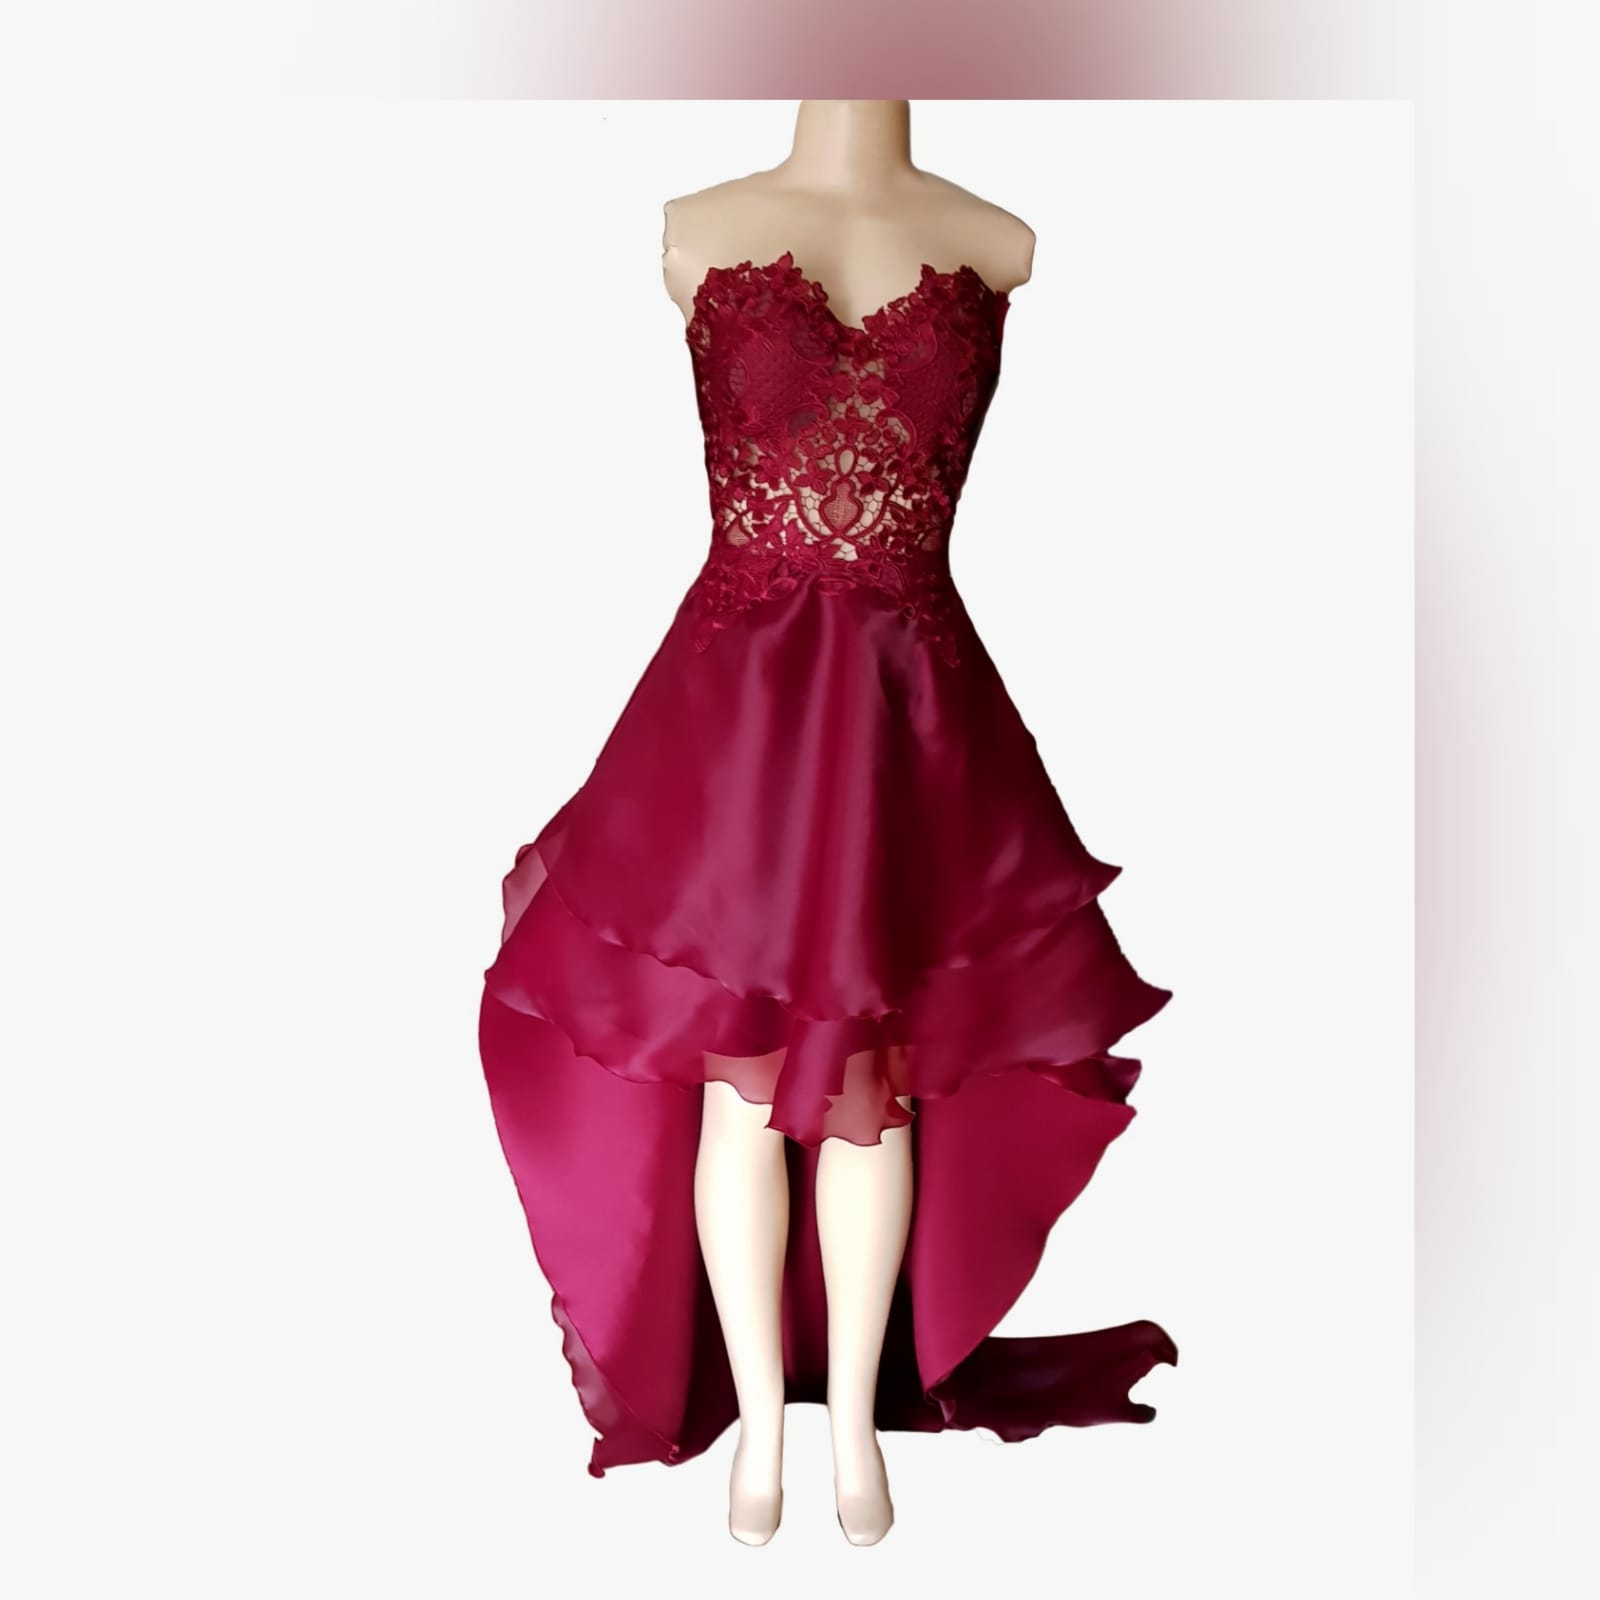 Dark red high low evening dress 7 the perfect dark red evening dress for your prom night if you want to look elegant yet adorable. With a lace bodice and a double layer hi - lo flowy bottom for a slight dramatic effect.